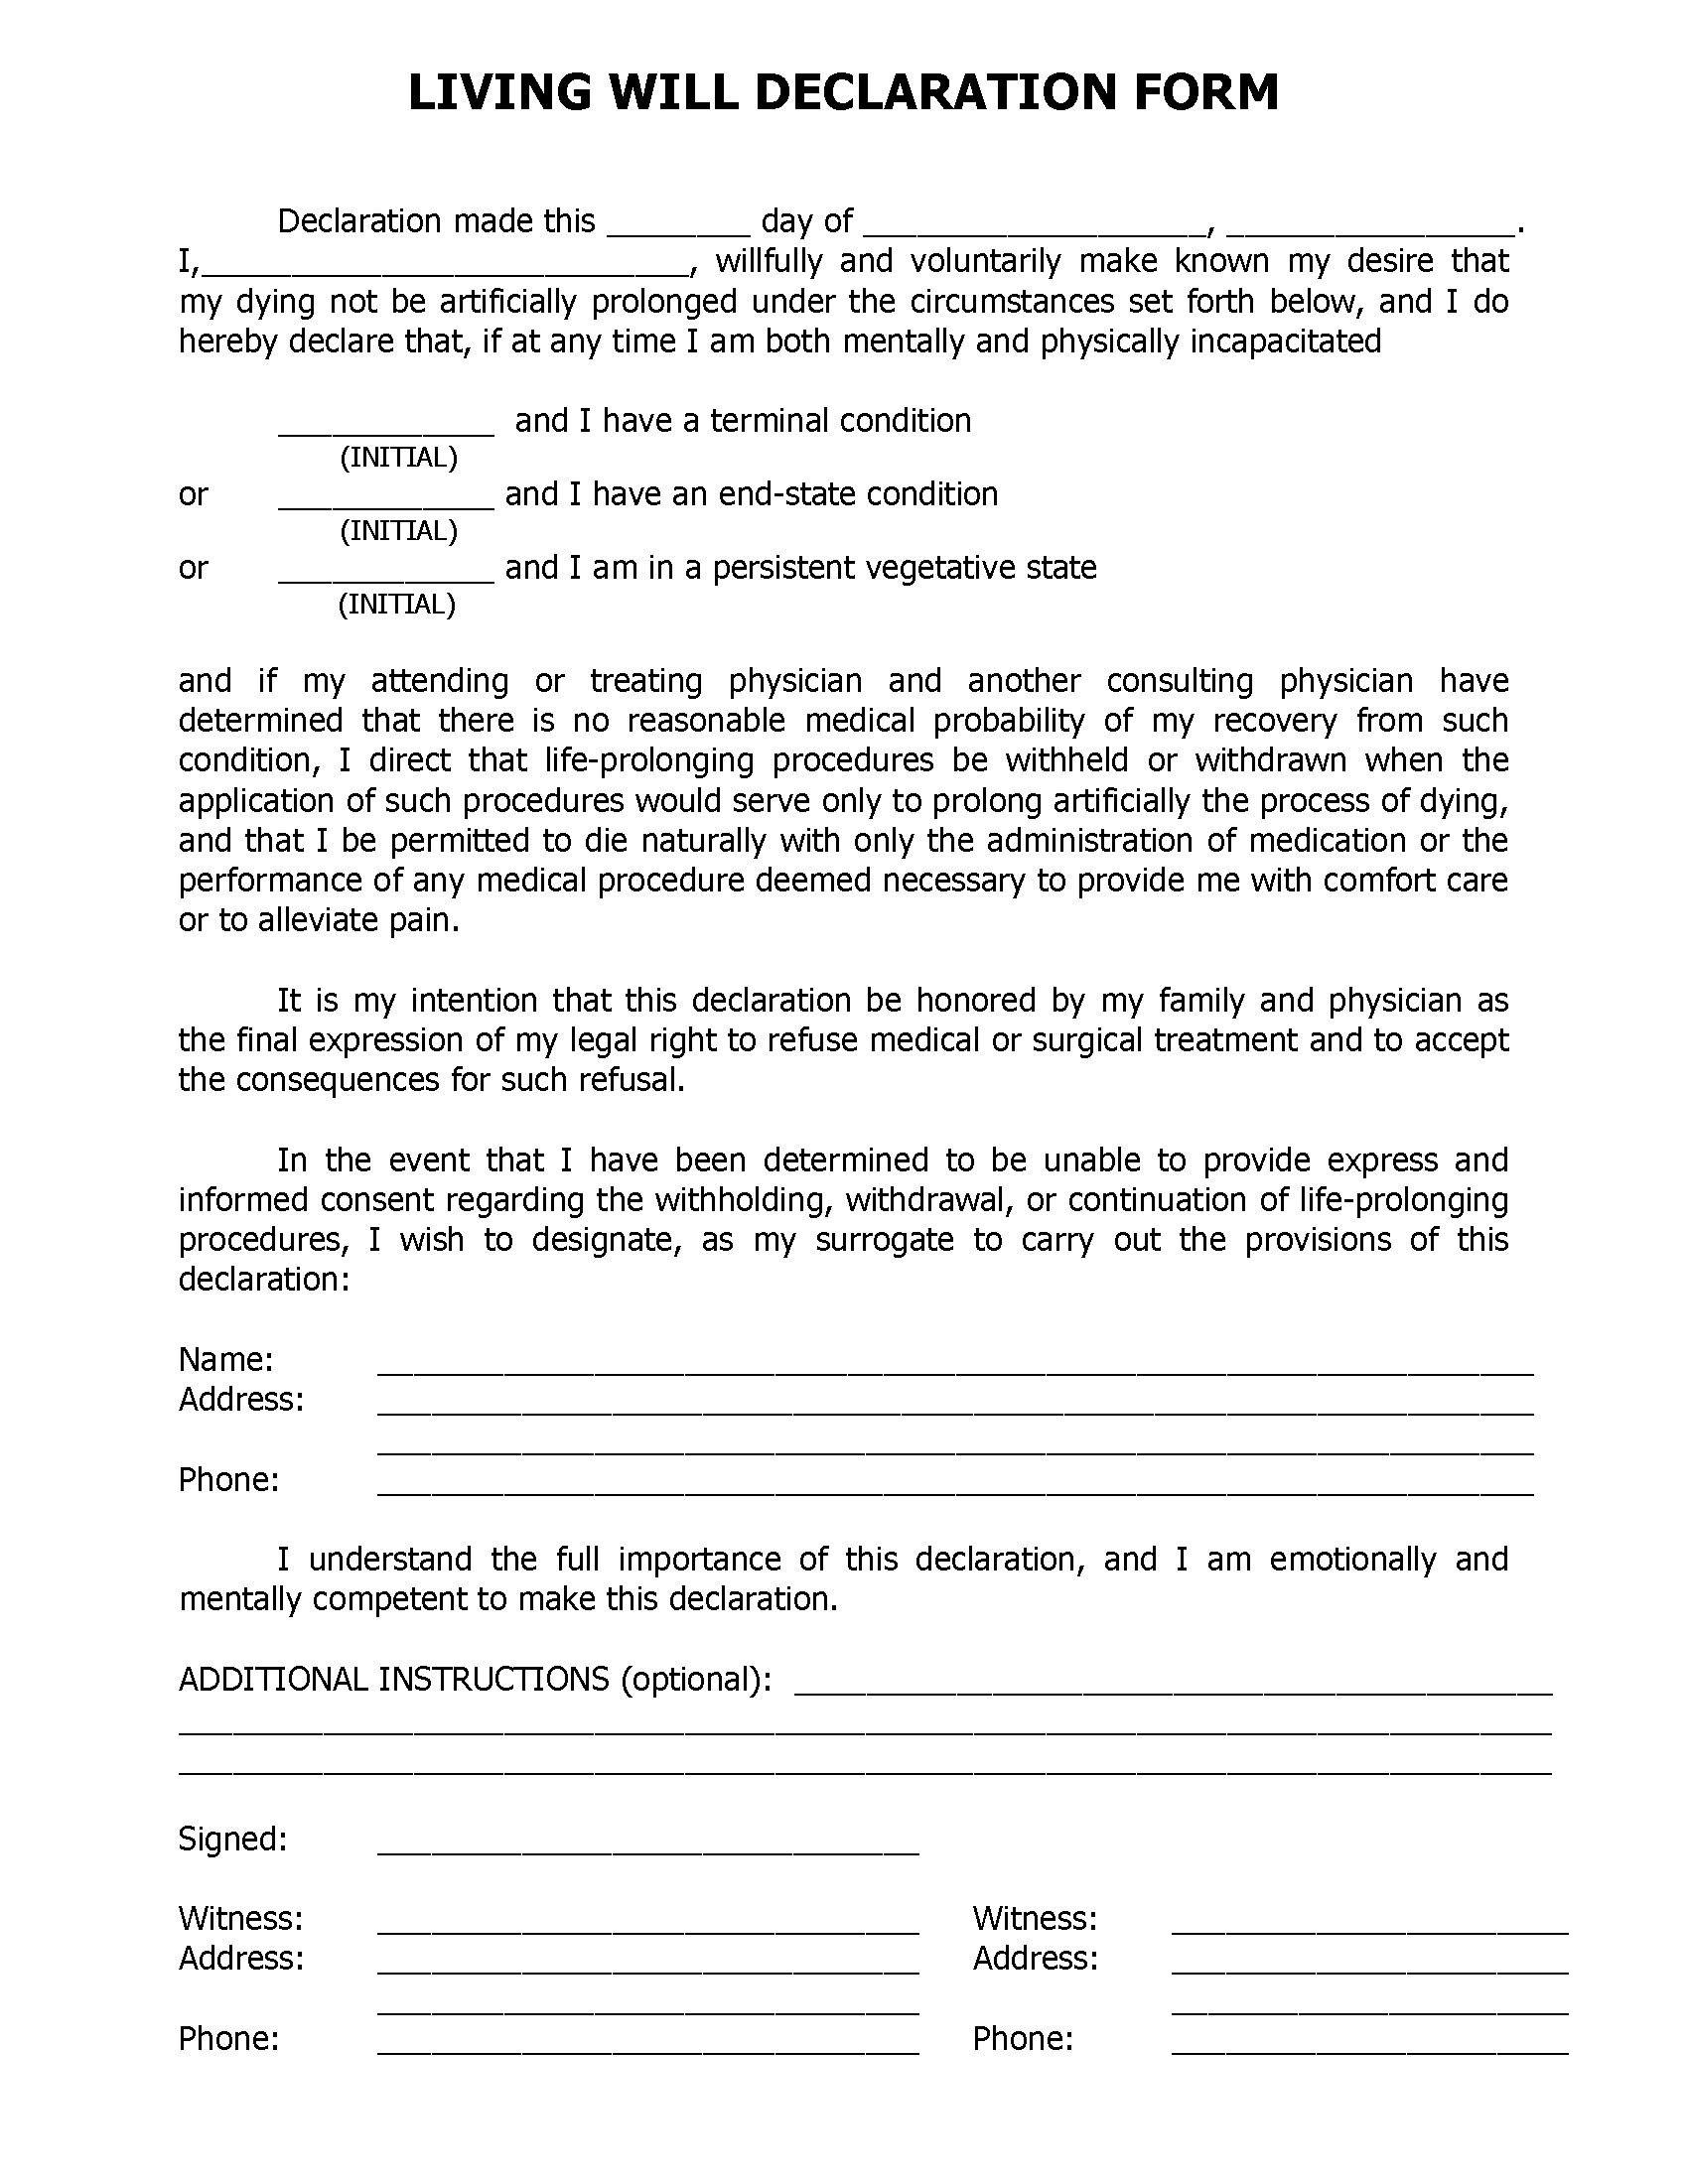 Florida Living Will Form Free Printable Legal Forms